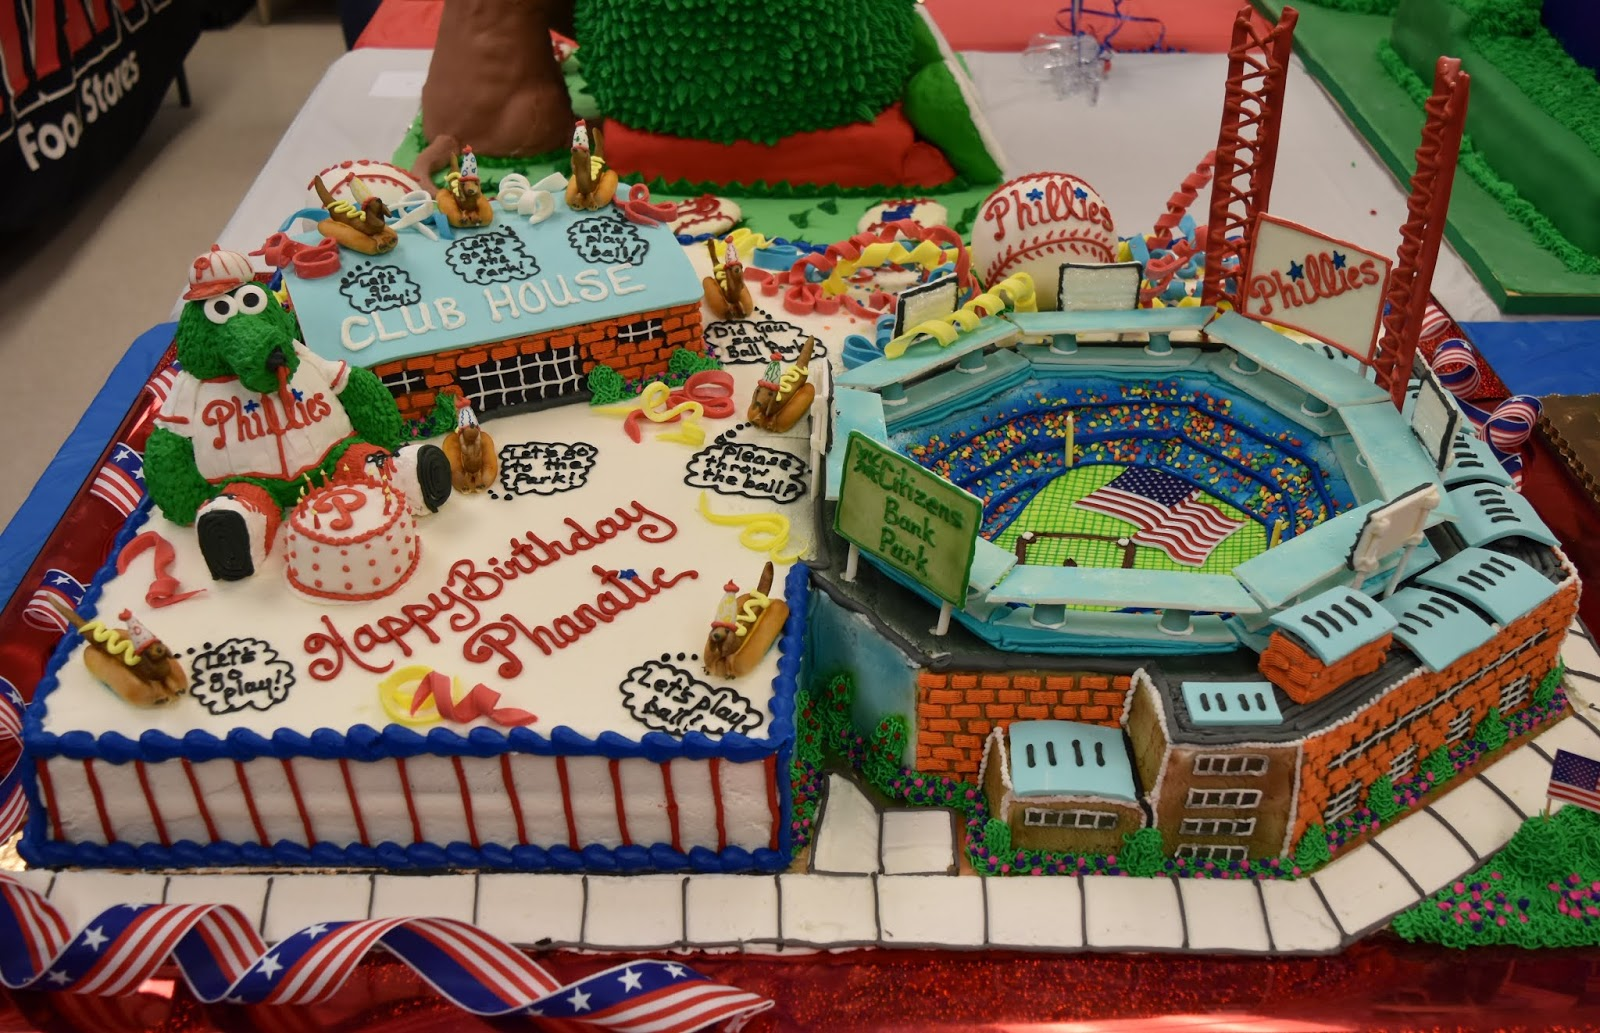 Incredible Batter Up Giant Food Store Bakery Specialists Celebrate Phillie Personalised Birthday Cards Sponlily Jamesorg